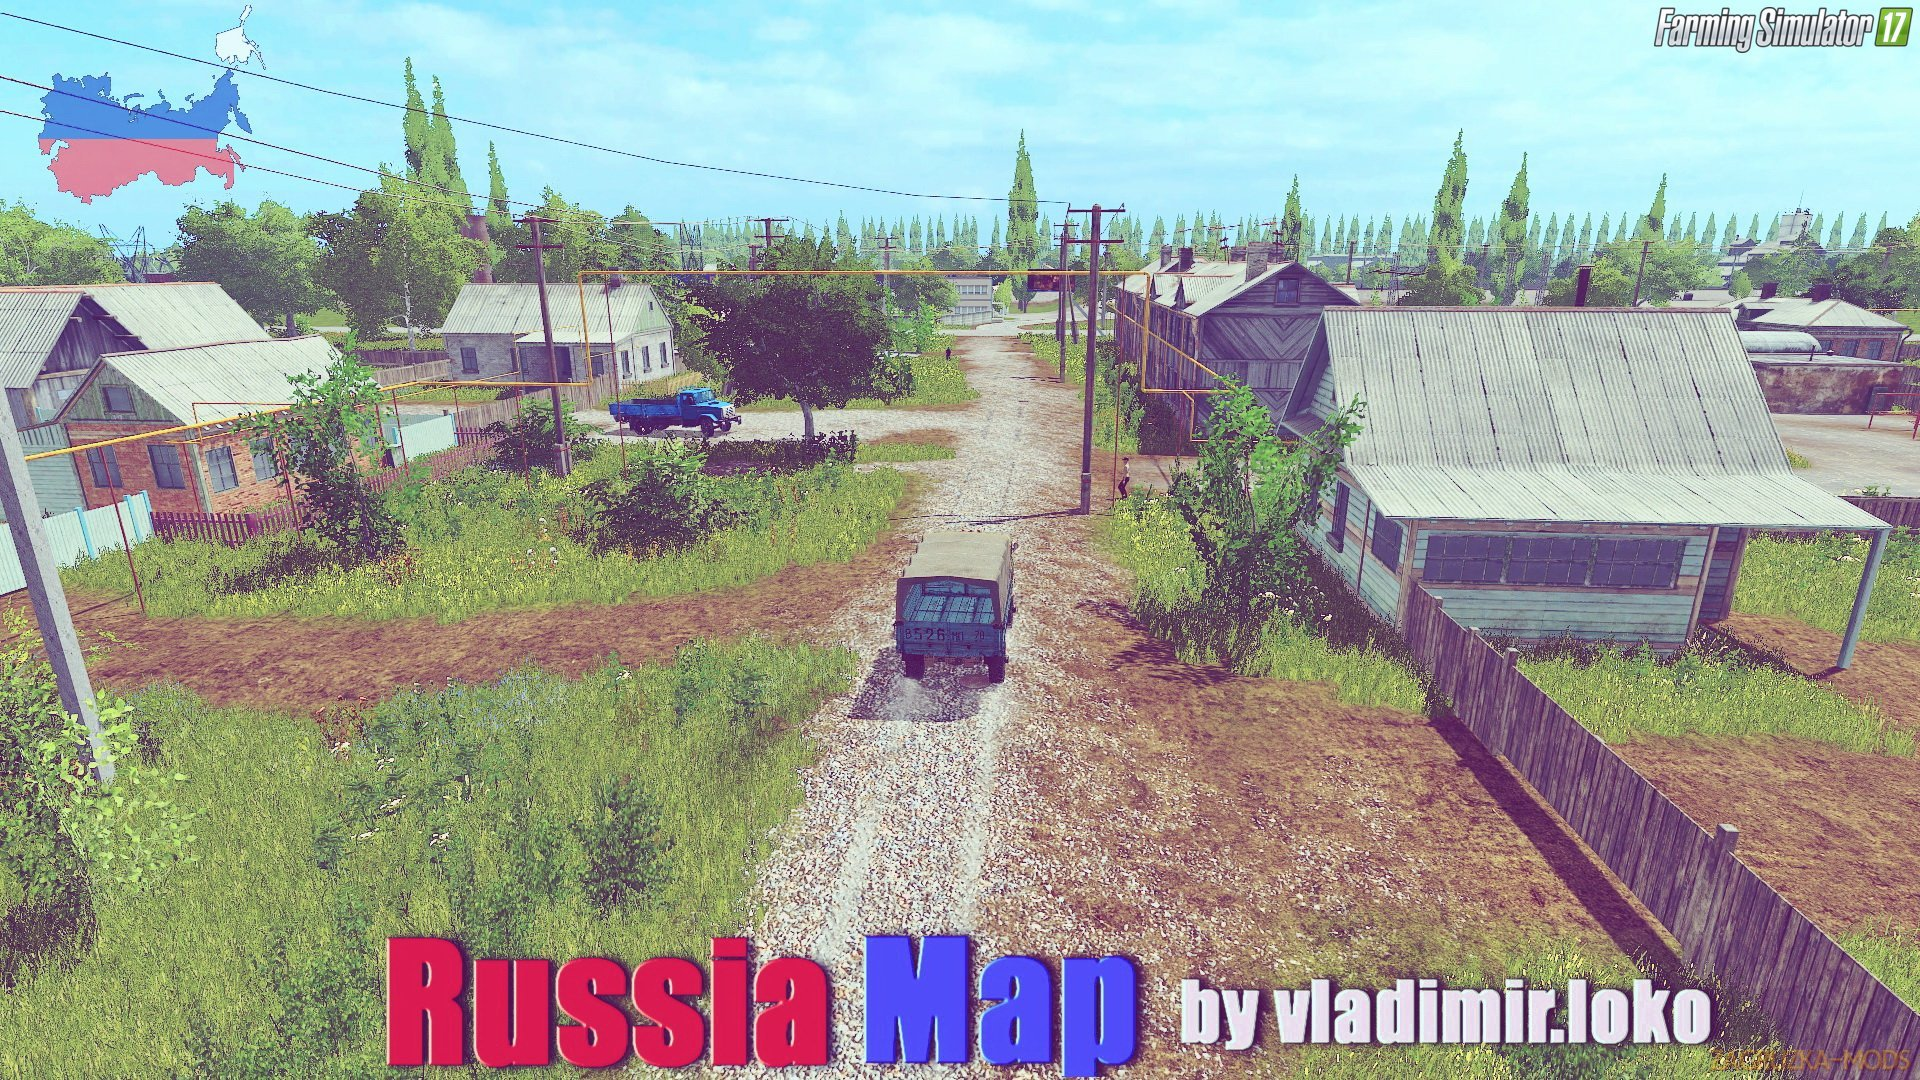 Russia Map v2.1.6 by vladimir.loko for FS17